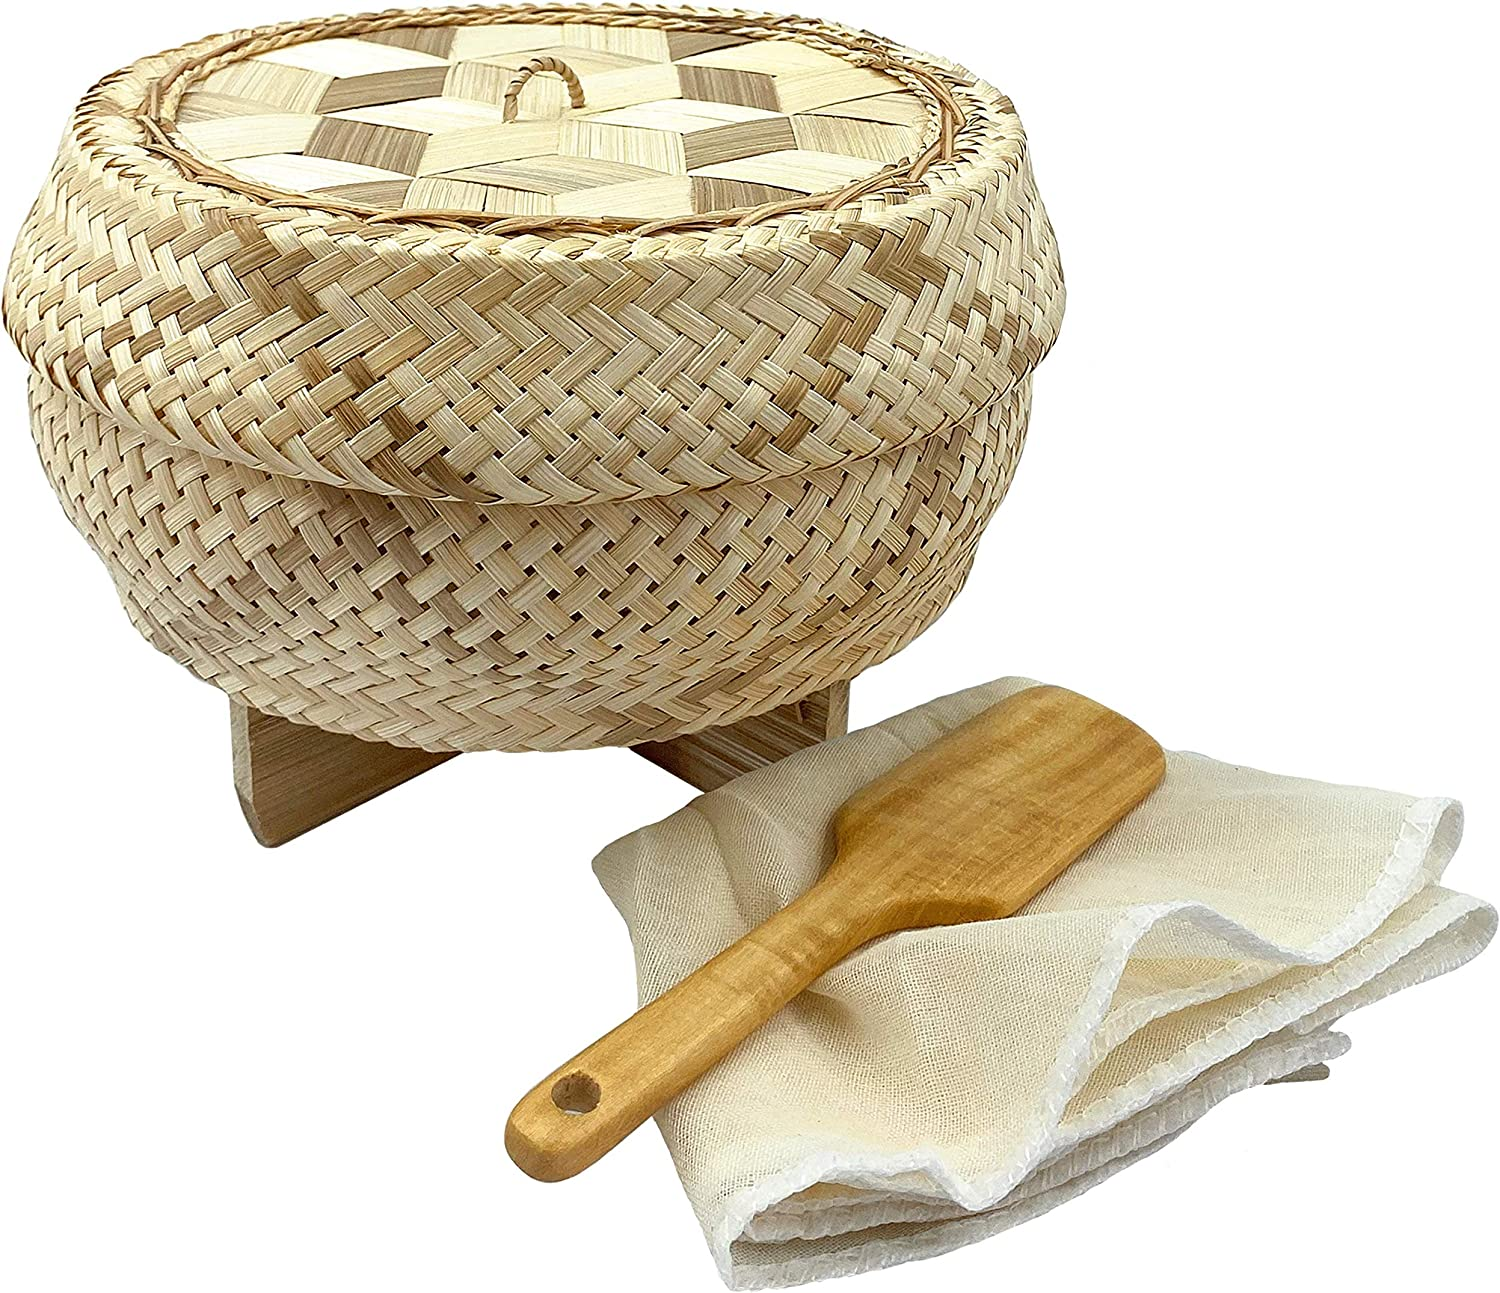 """Handmade 100% Natural Thai Bamboo Sticky Rice """"Electric Cooker Steamer Set"""", Small Pot Insert ~ 6.5 Inch, Checkered Wicker Woven Lid, 16'' Cheesecloth Filter, and Wooden Spoon"""